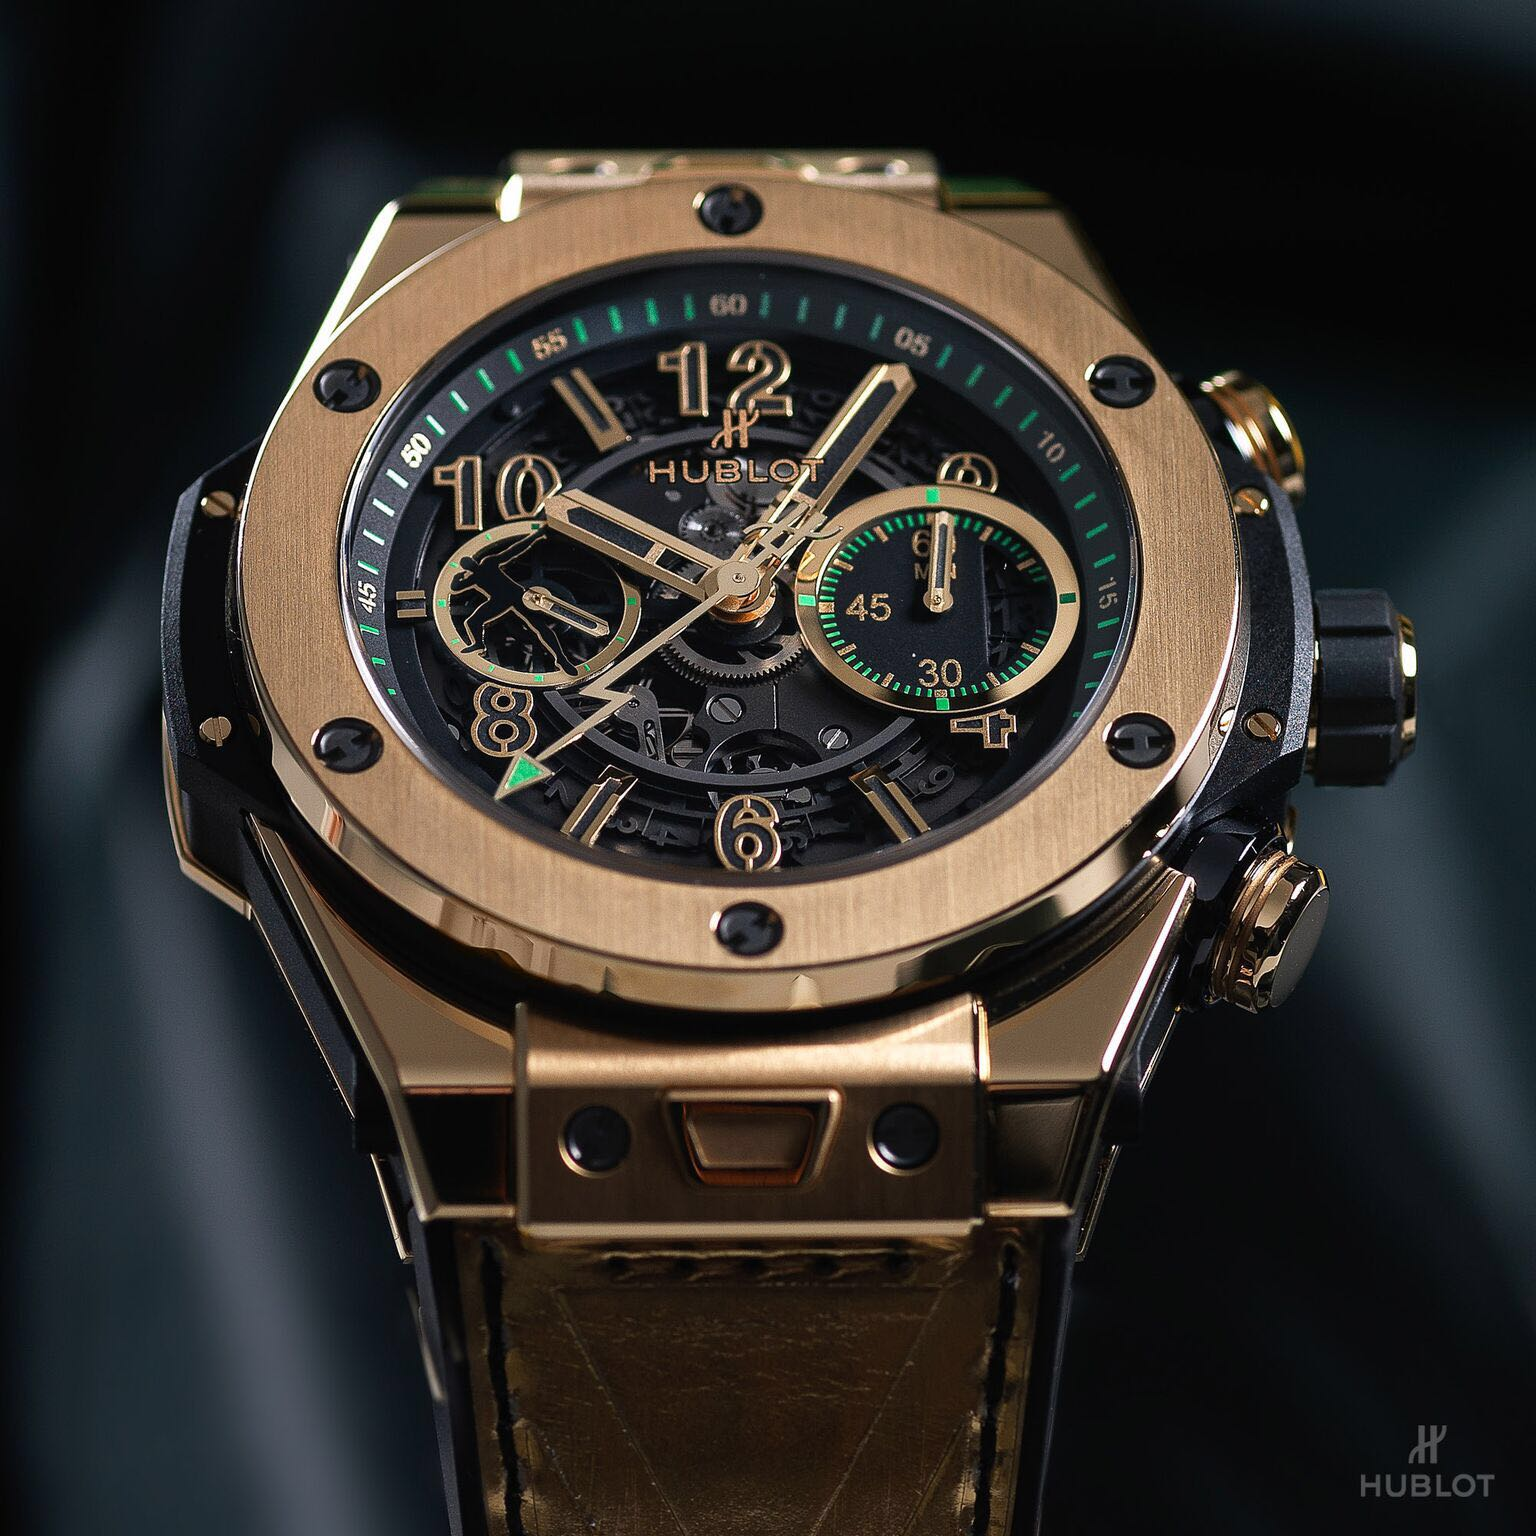 Hublot launches two new Usain Bolt signature watches